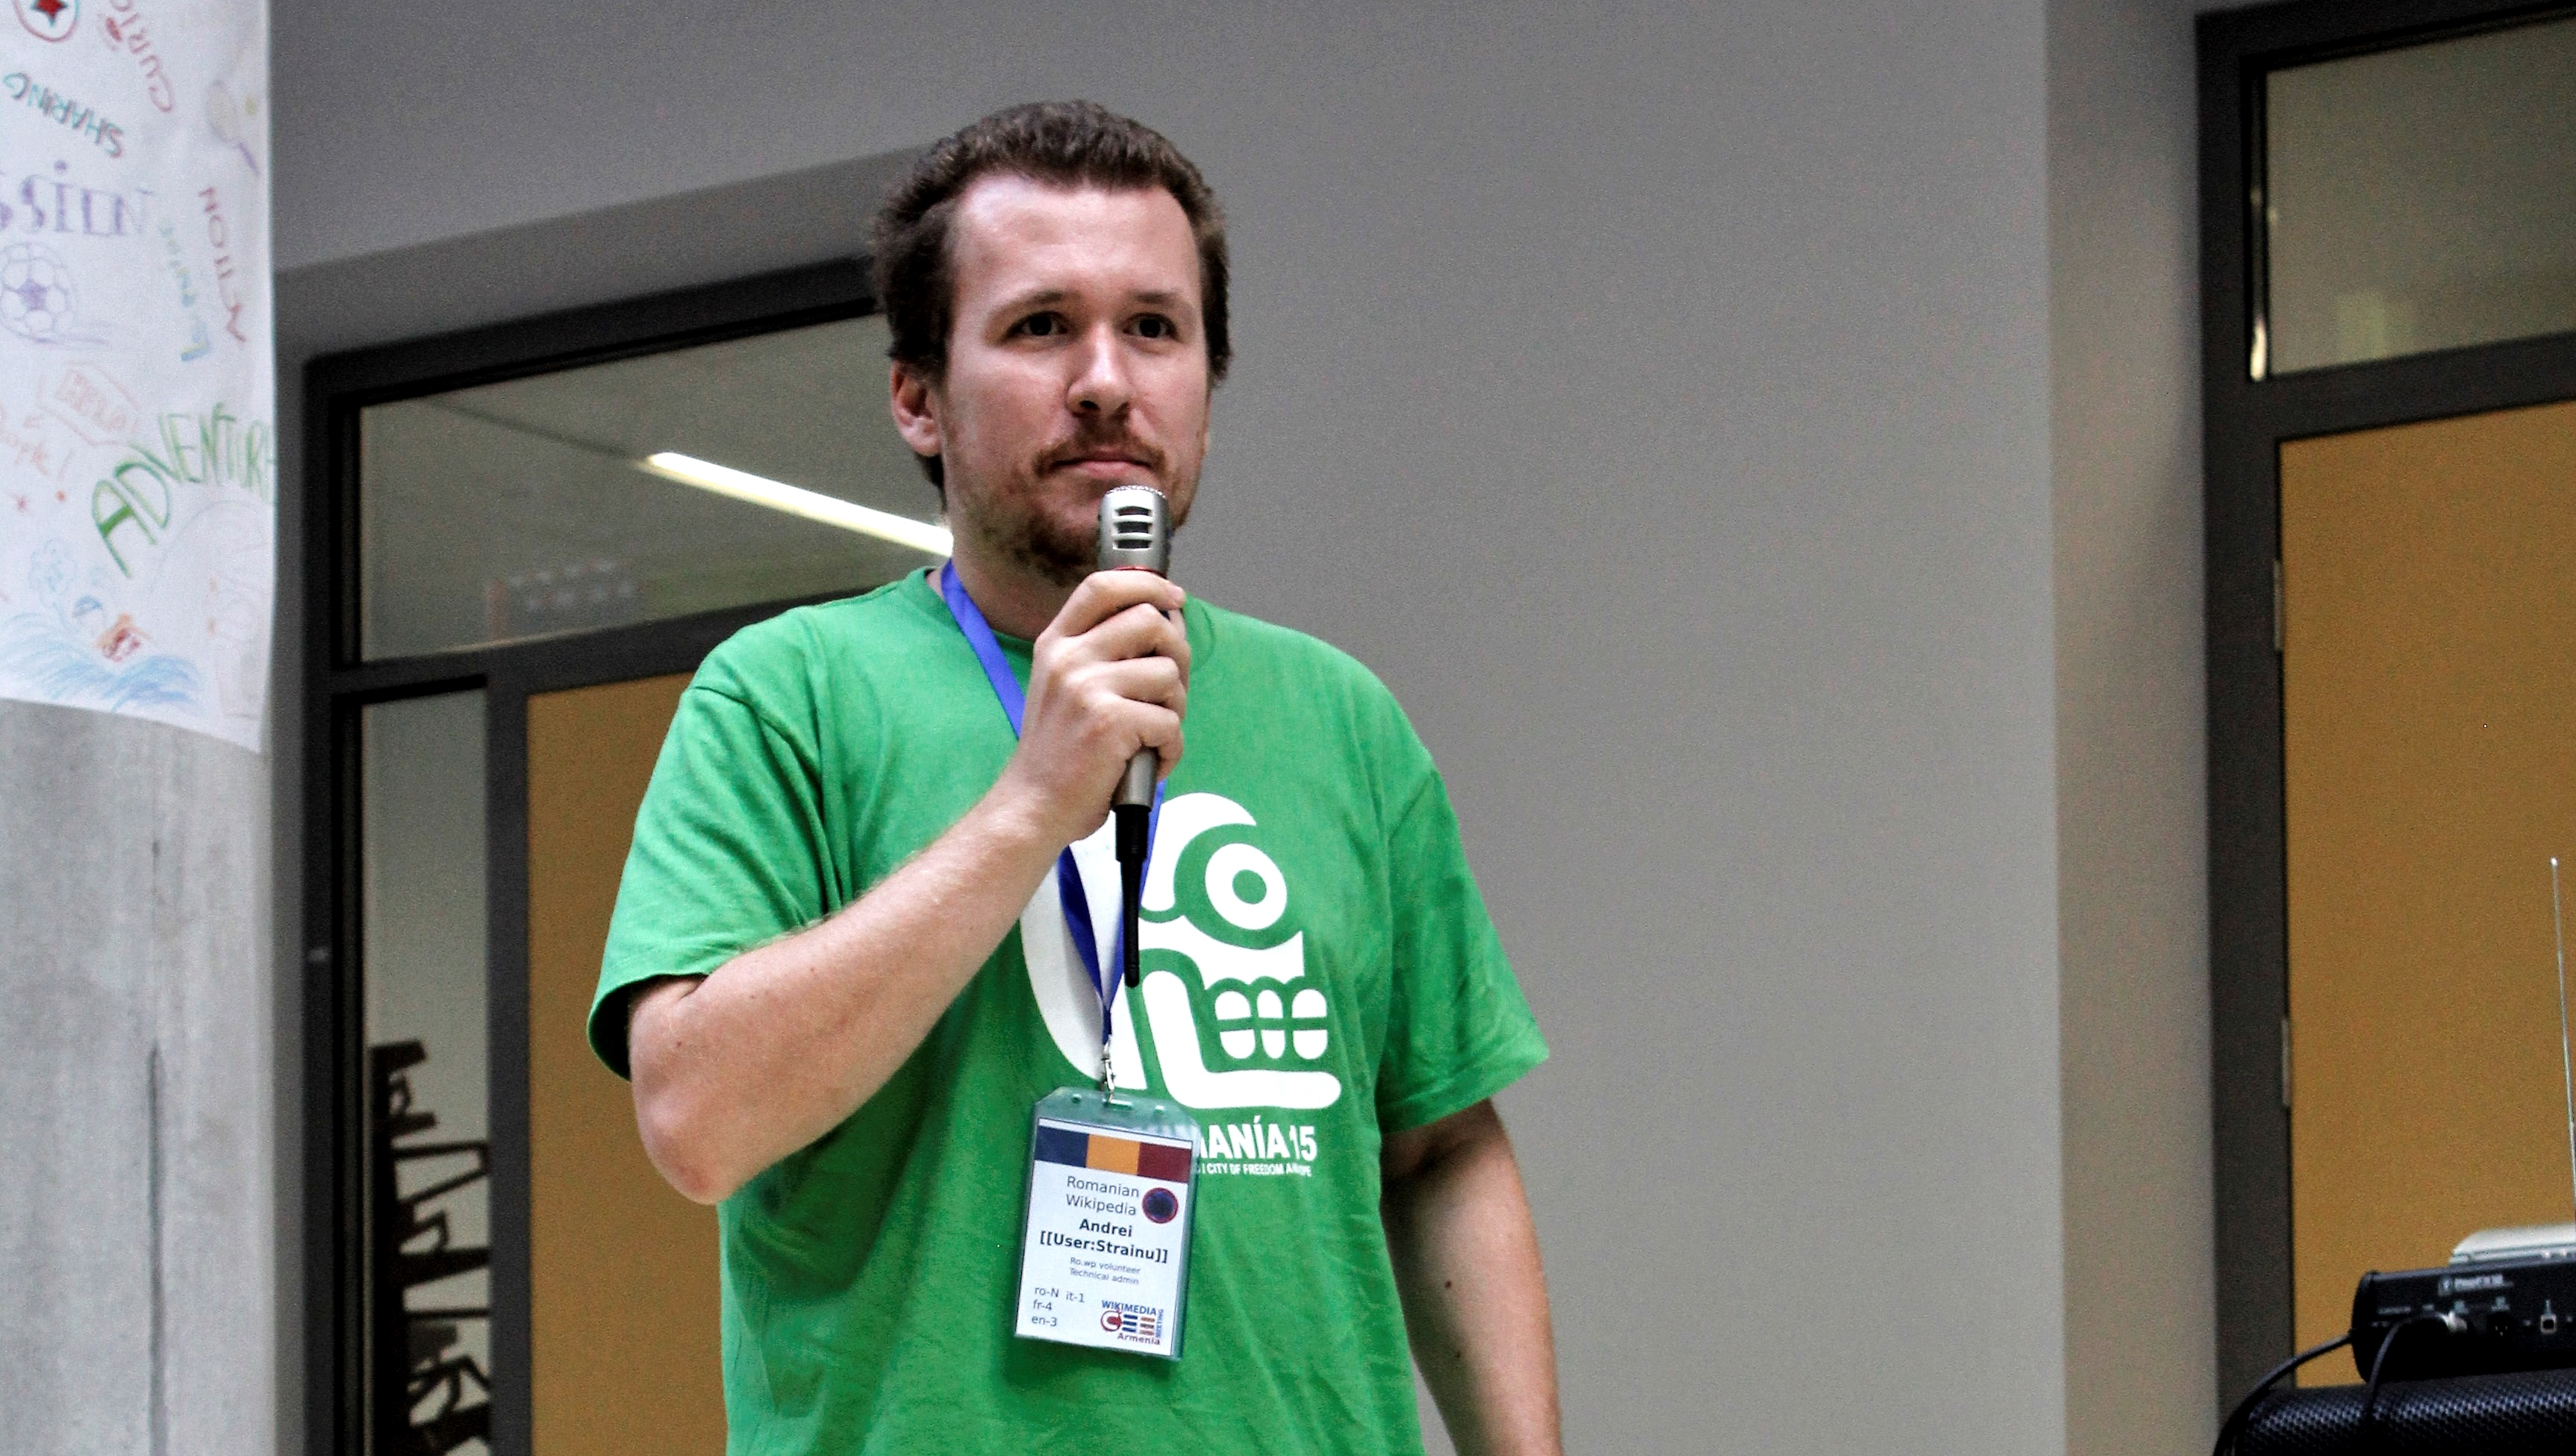 Andrei Cipu at Wikimedia CEE 2016. Photo: Lubekar. License: CC-BY-SA-4.0